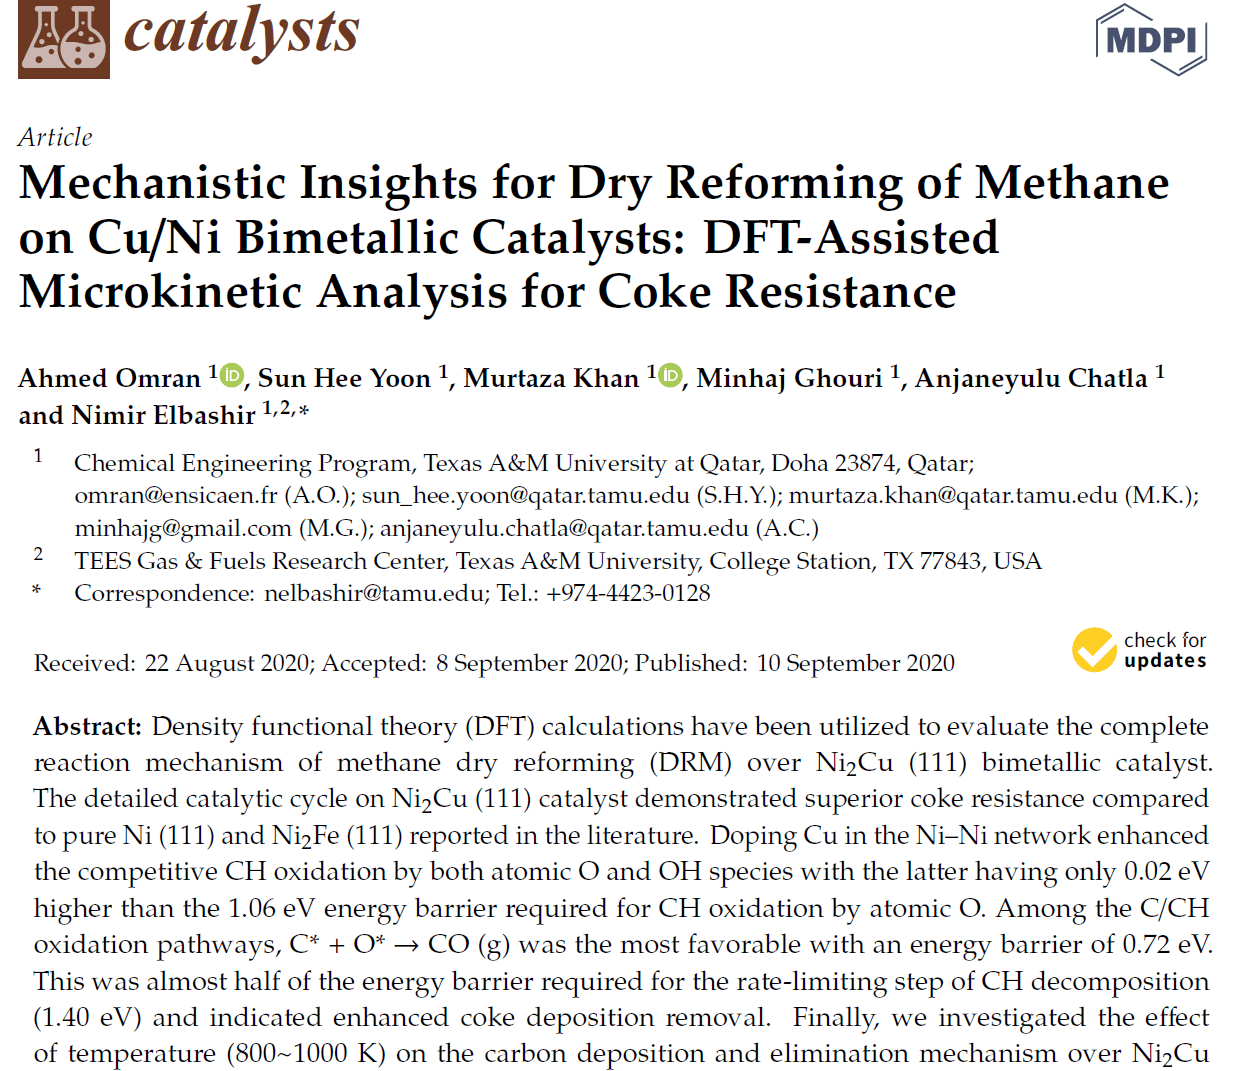 Article on Density Functional Theory mechanism of DRM on Ni-Cu bimetallic catalyst published!